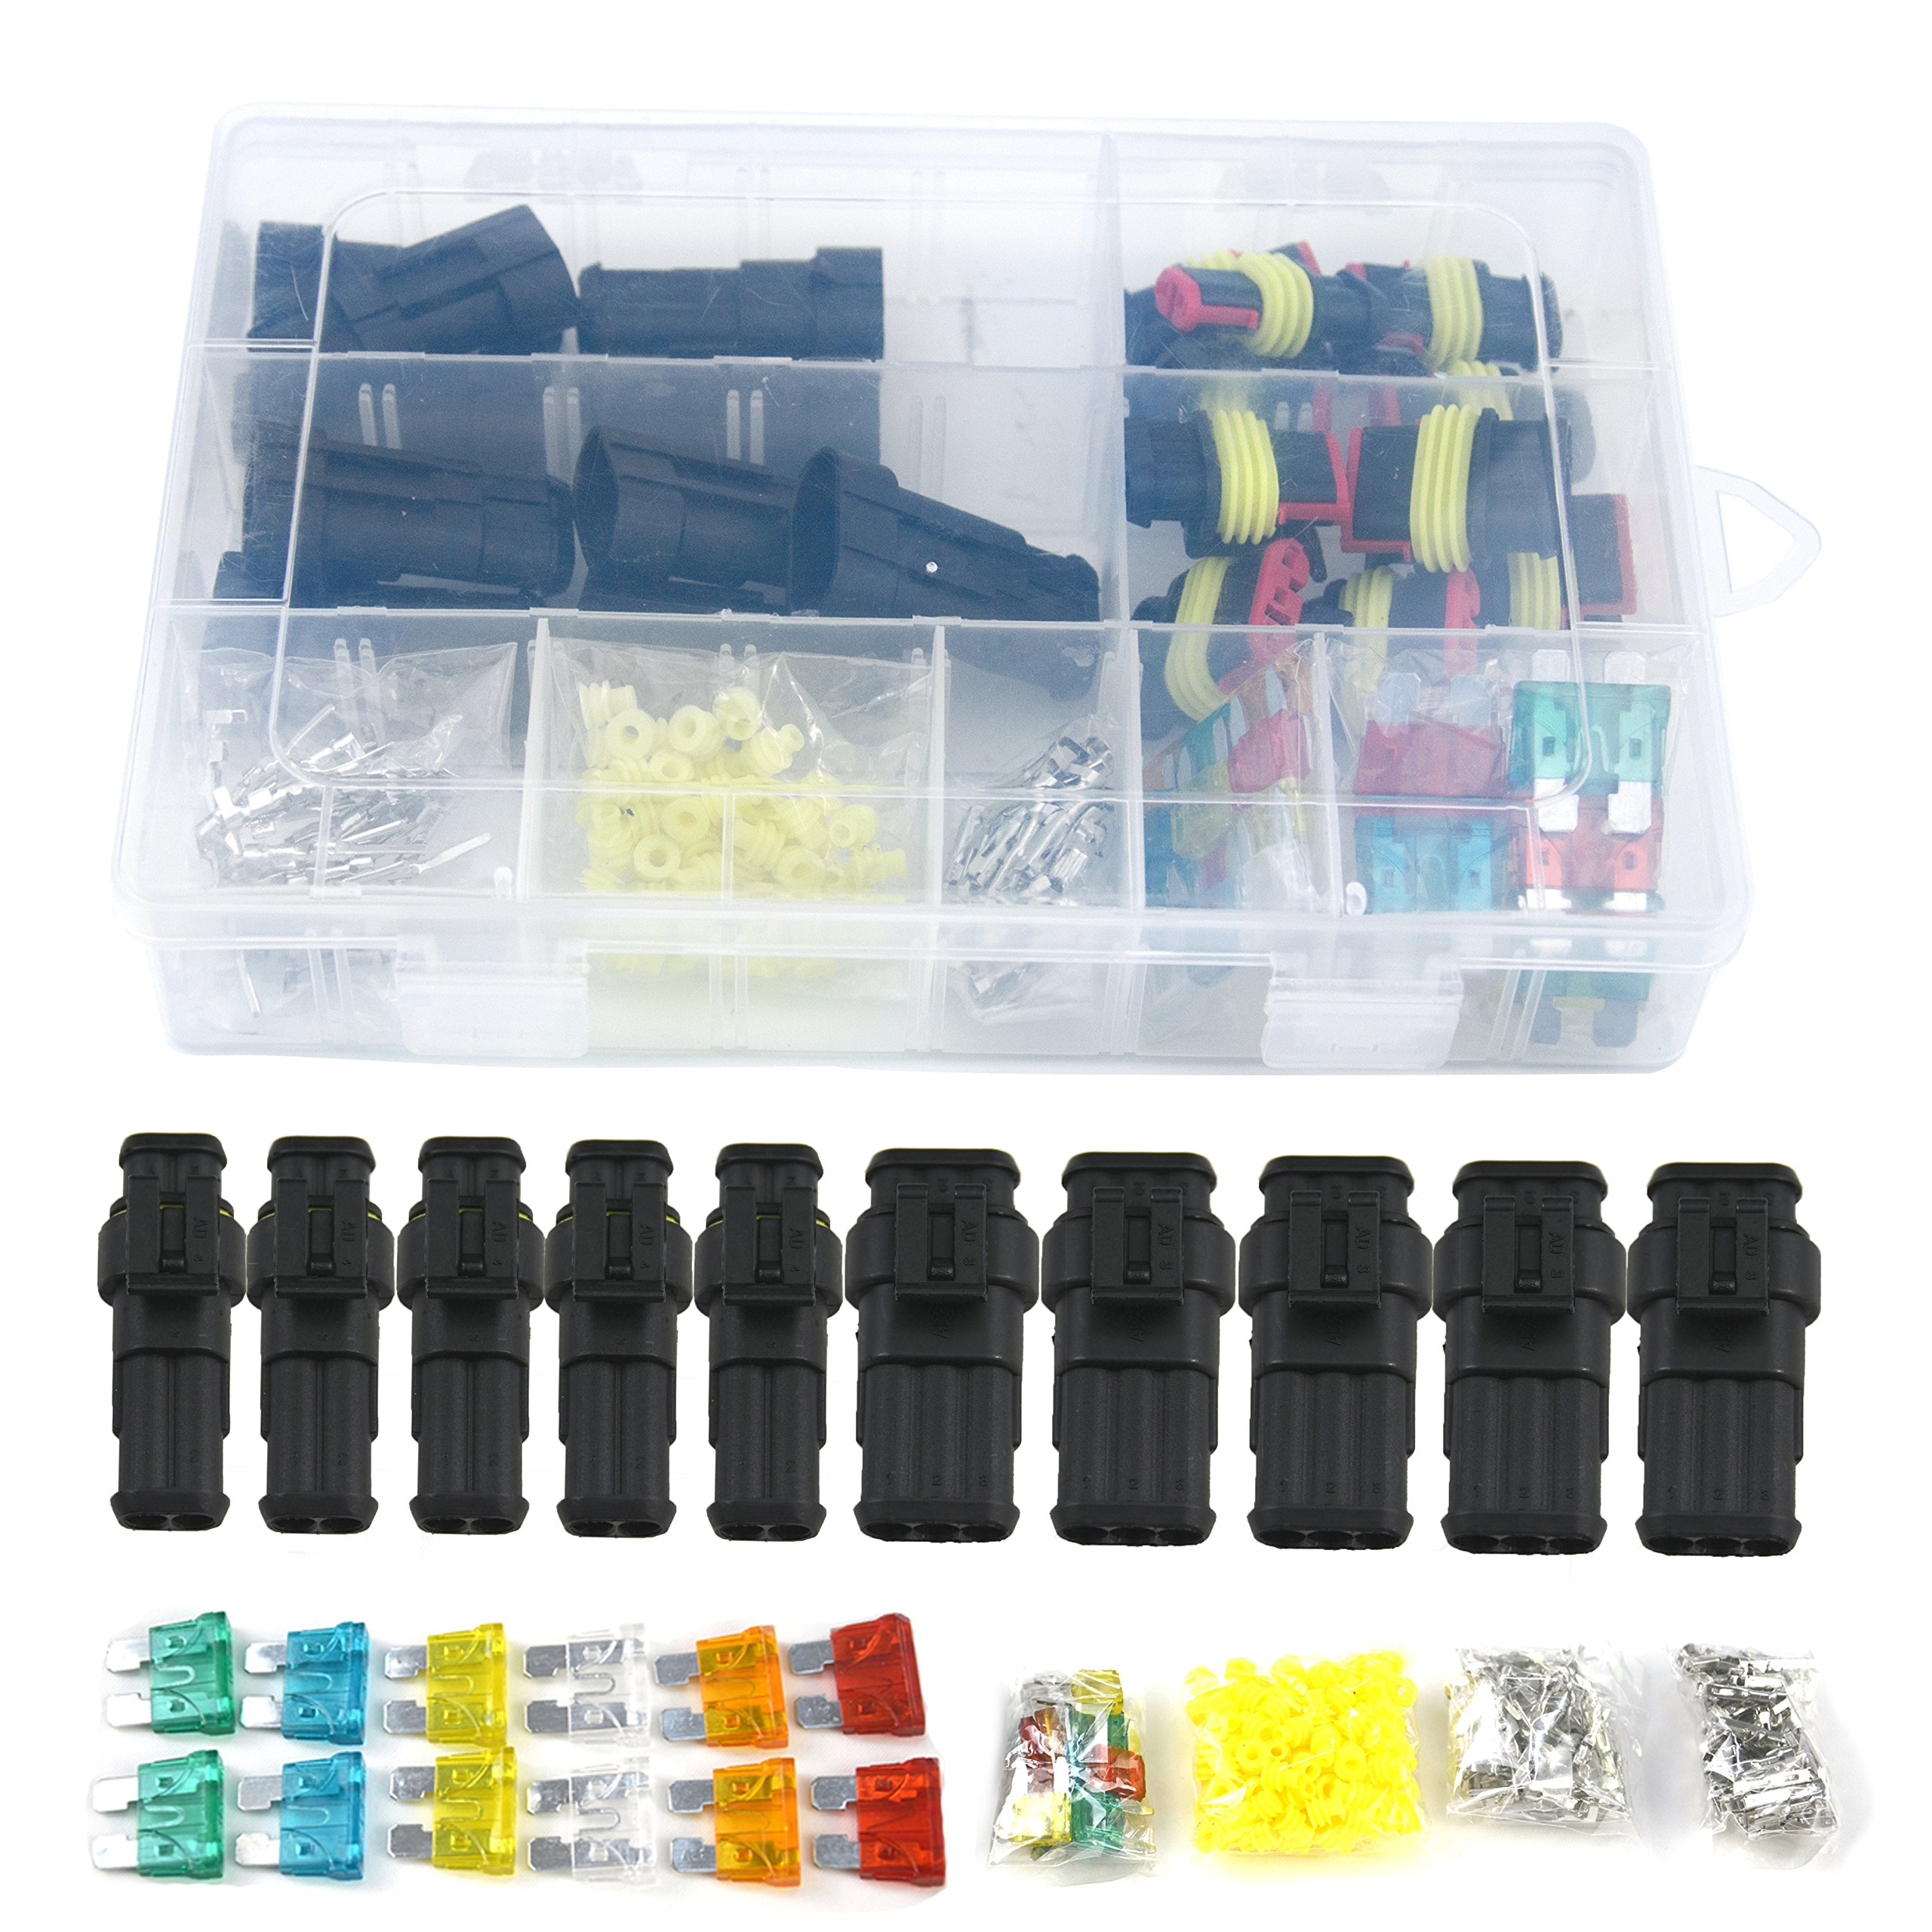 10 Set Waterproof Electrical Connector Plug Terminals Heat Shrink 2/3 Pin Way with Fuses, Clear Box by Qook (Image #2)